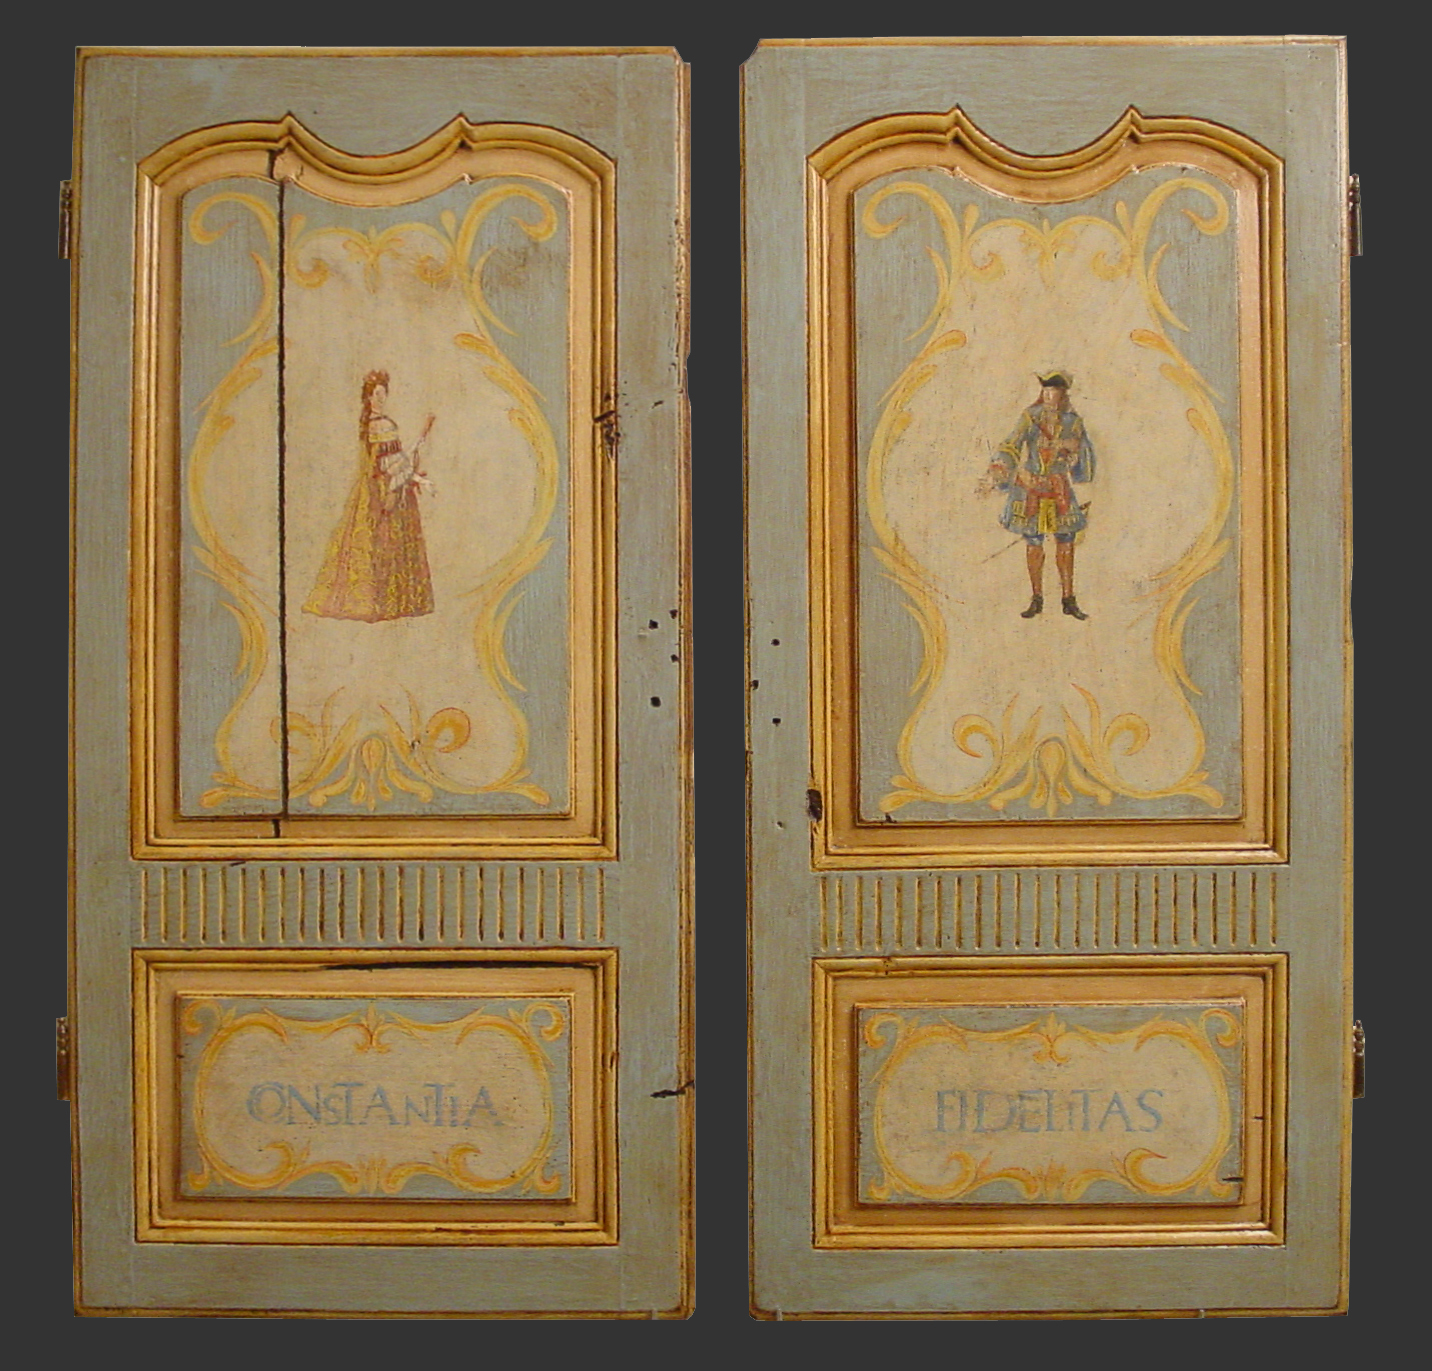 Primateria cr ation et restauration de polychromies for Meuble porte volet